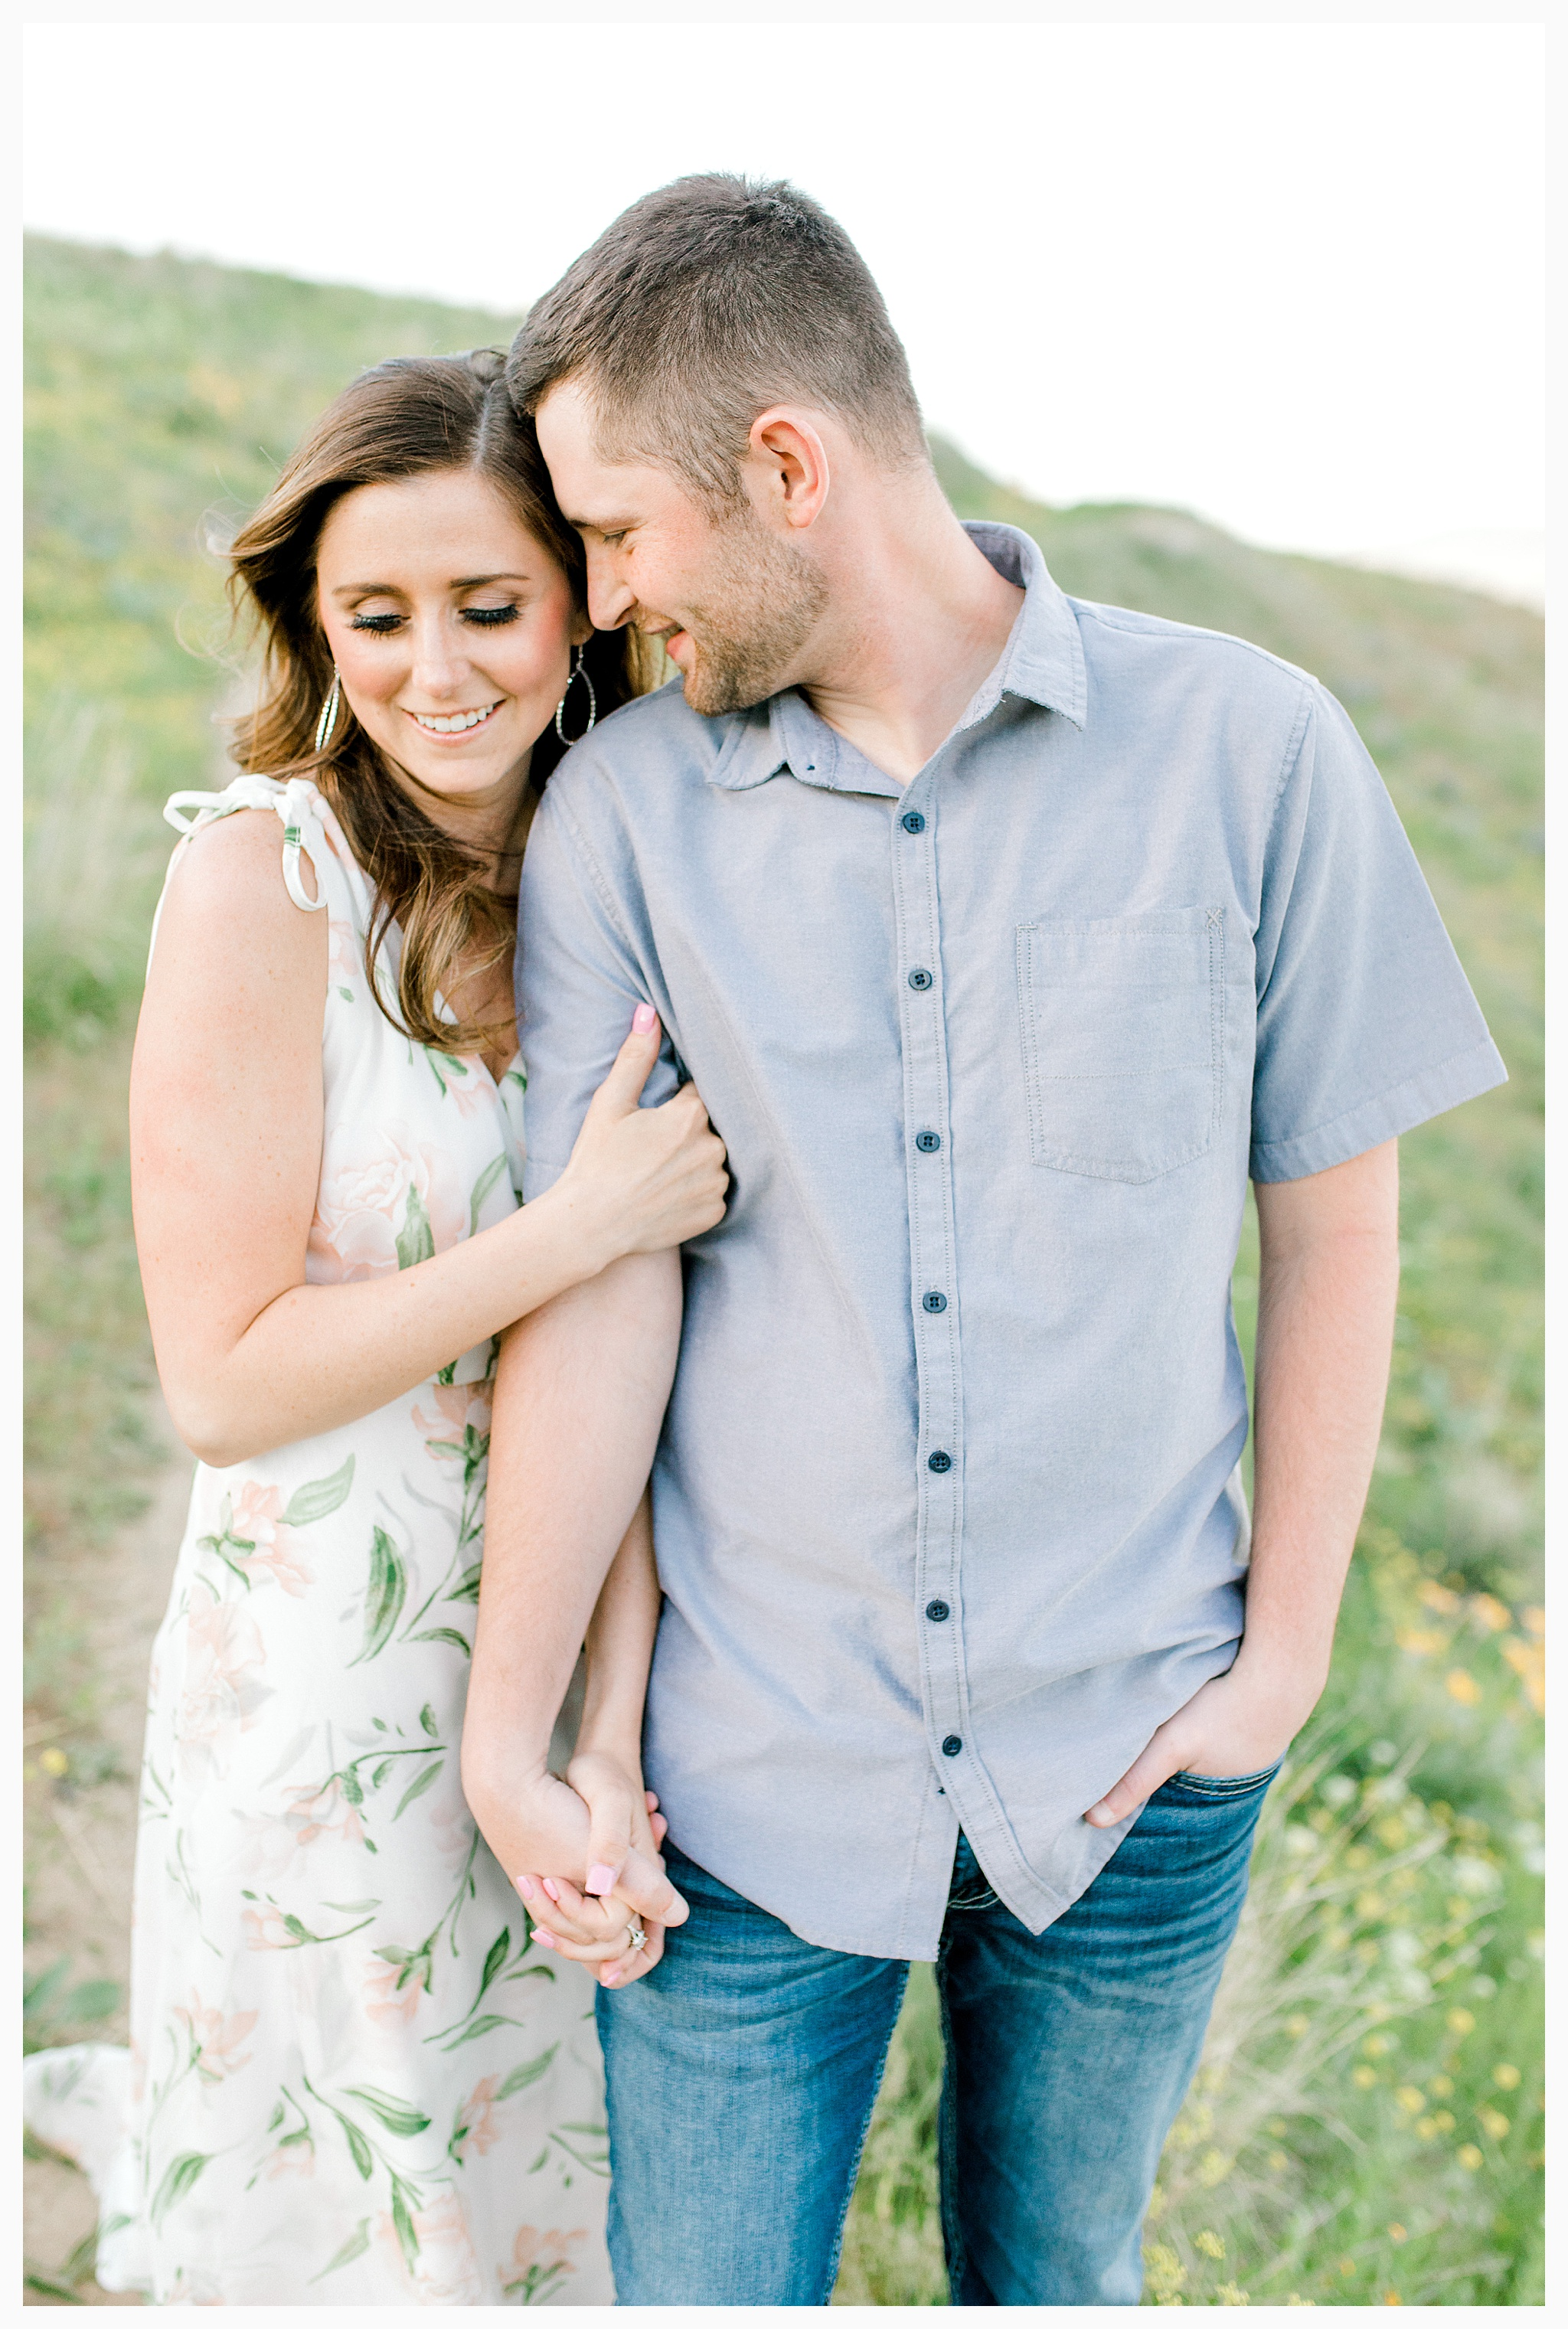 Engagement session amongst the wildflowers in Wenatchee, Washington | Engagement Session Outfit Inspiration for Wedding Photography with Emma Rose Company | Light and Airy PNW Photographer, Seattle Bride_0004.jpg